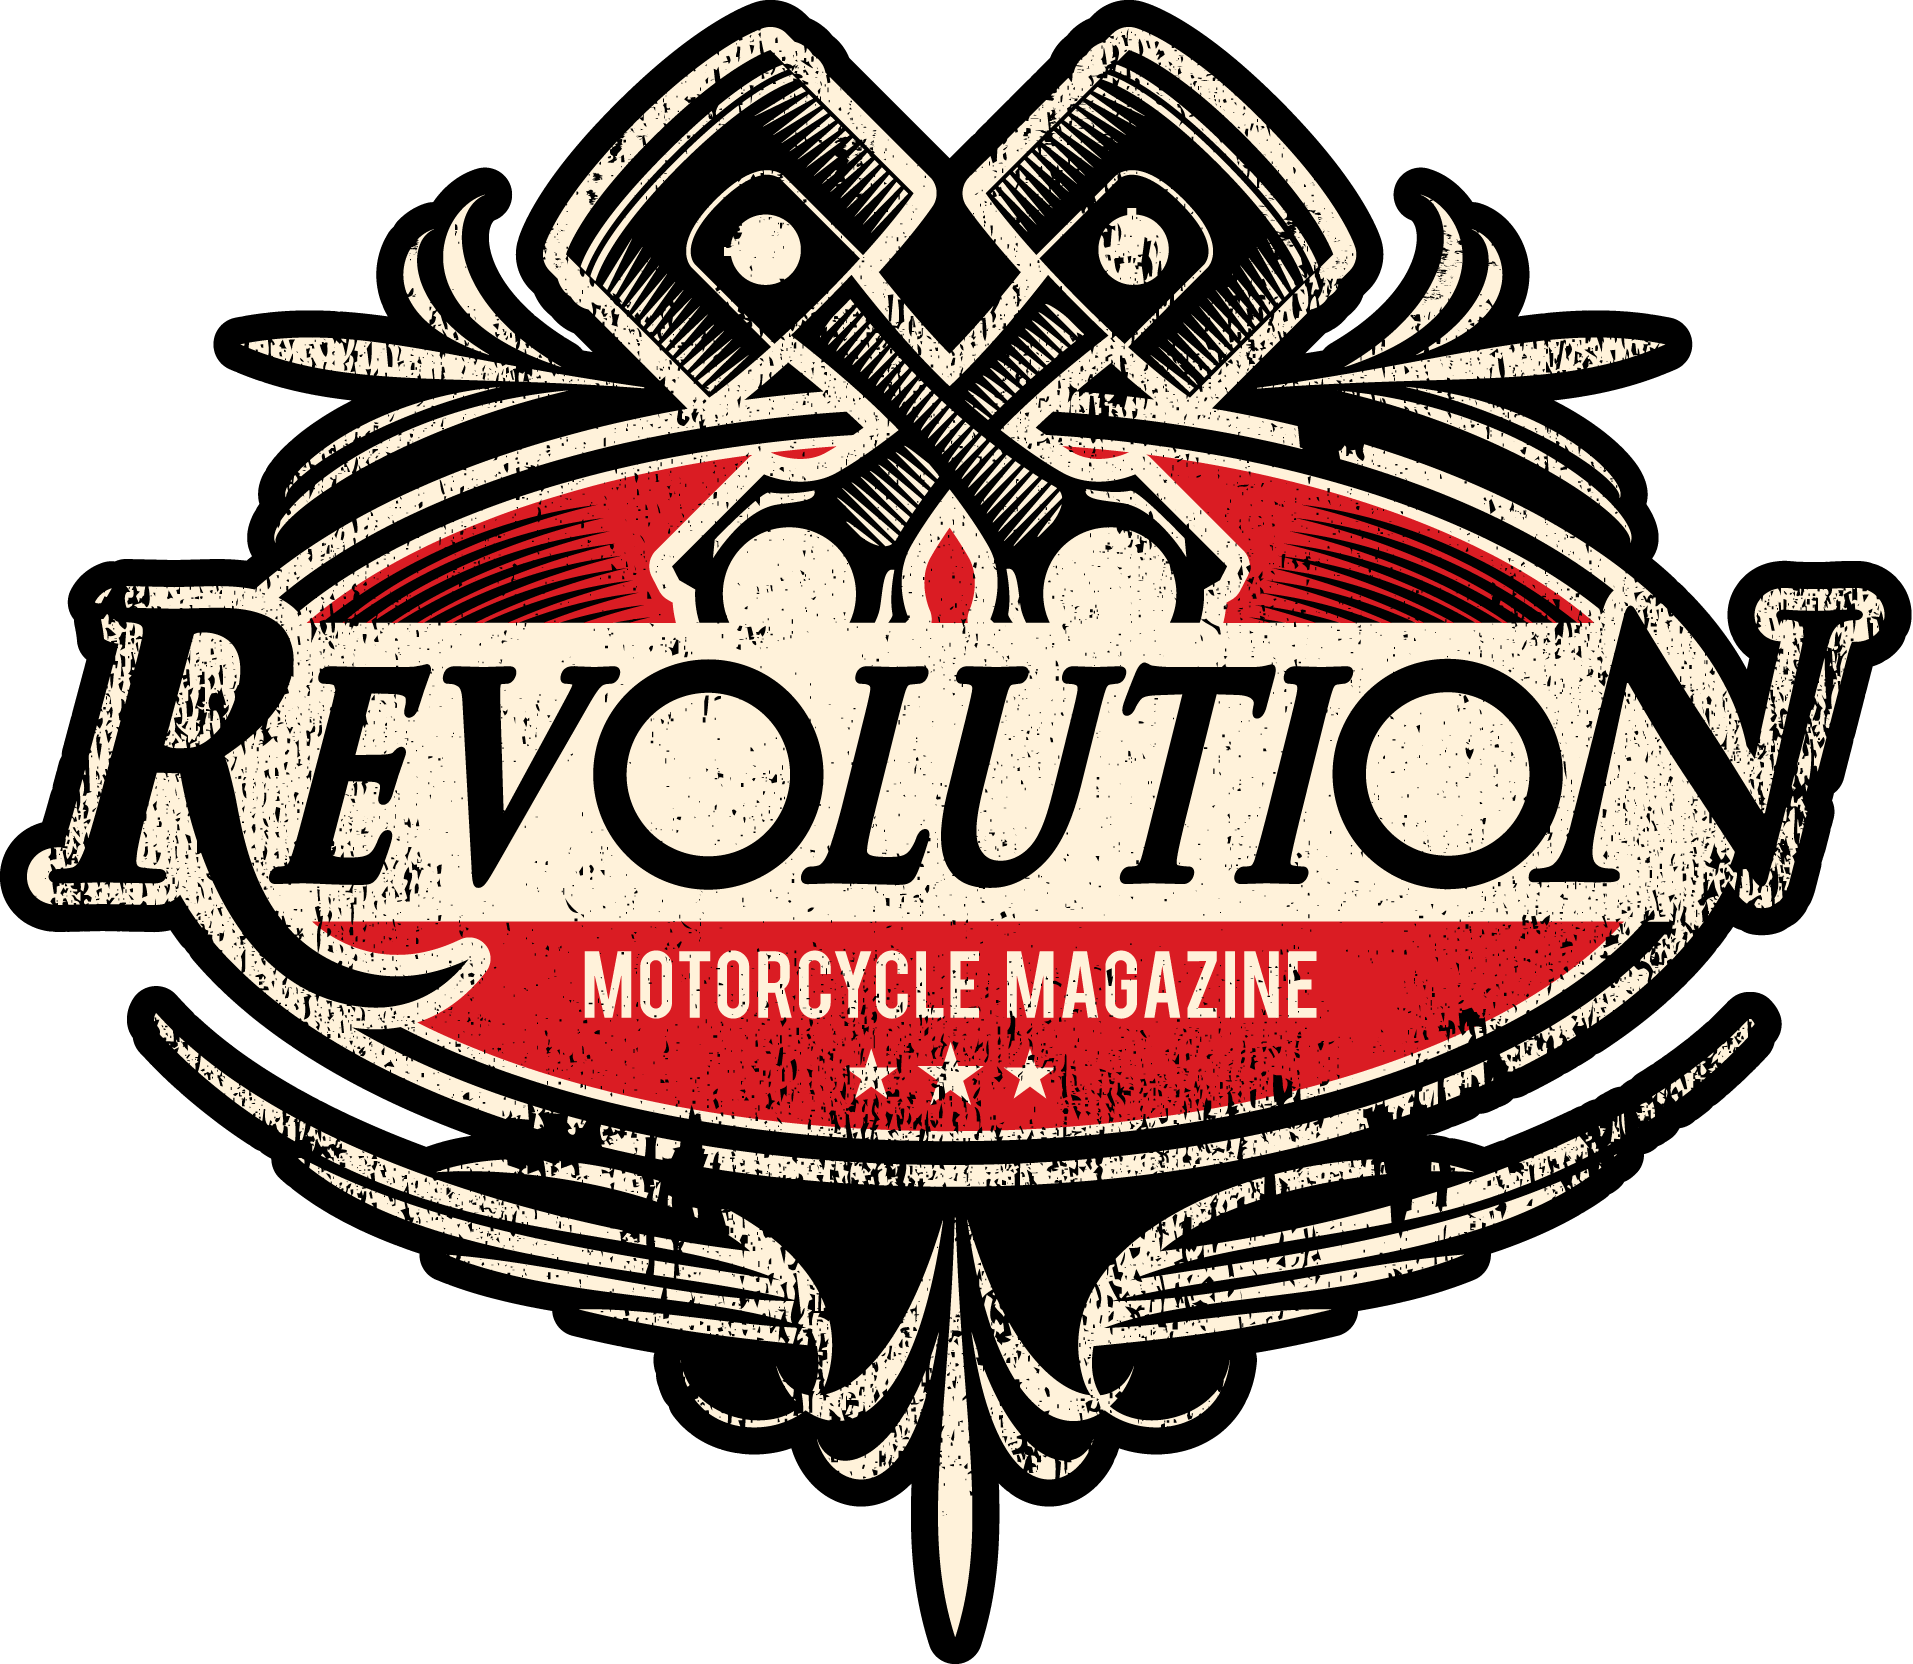 REVOLUTION MOTORCYCLE MAG